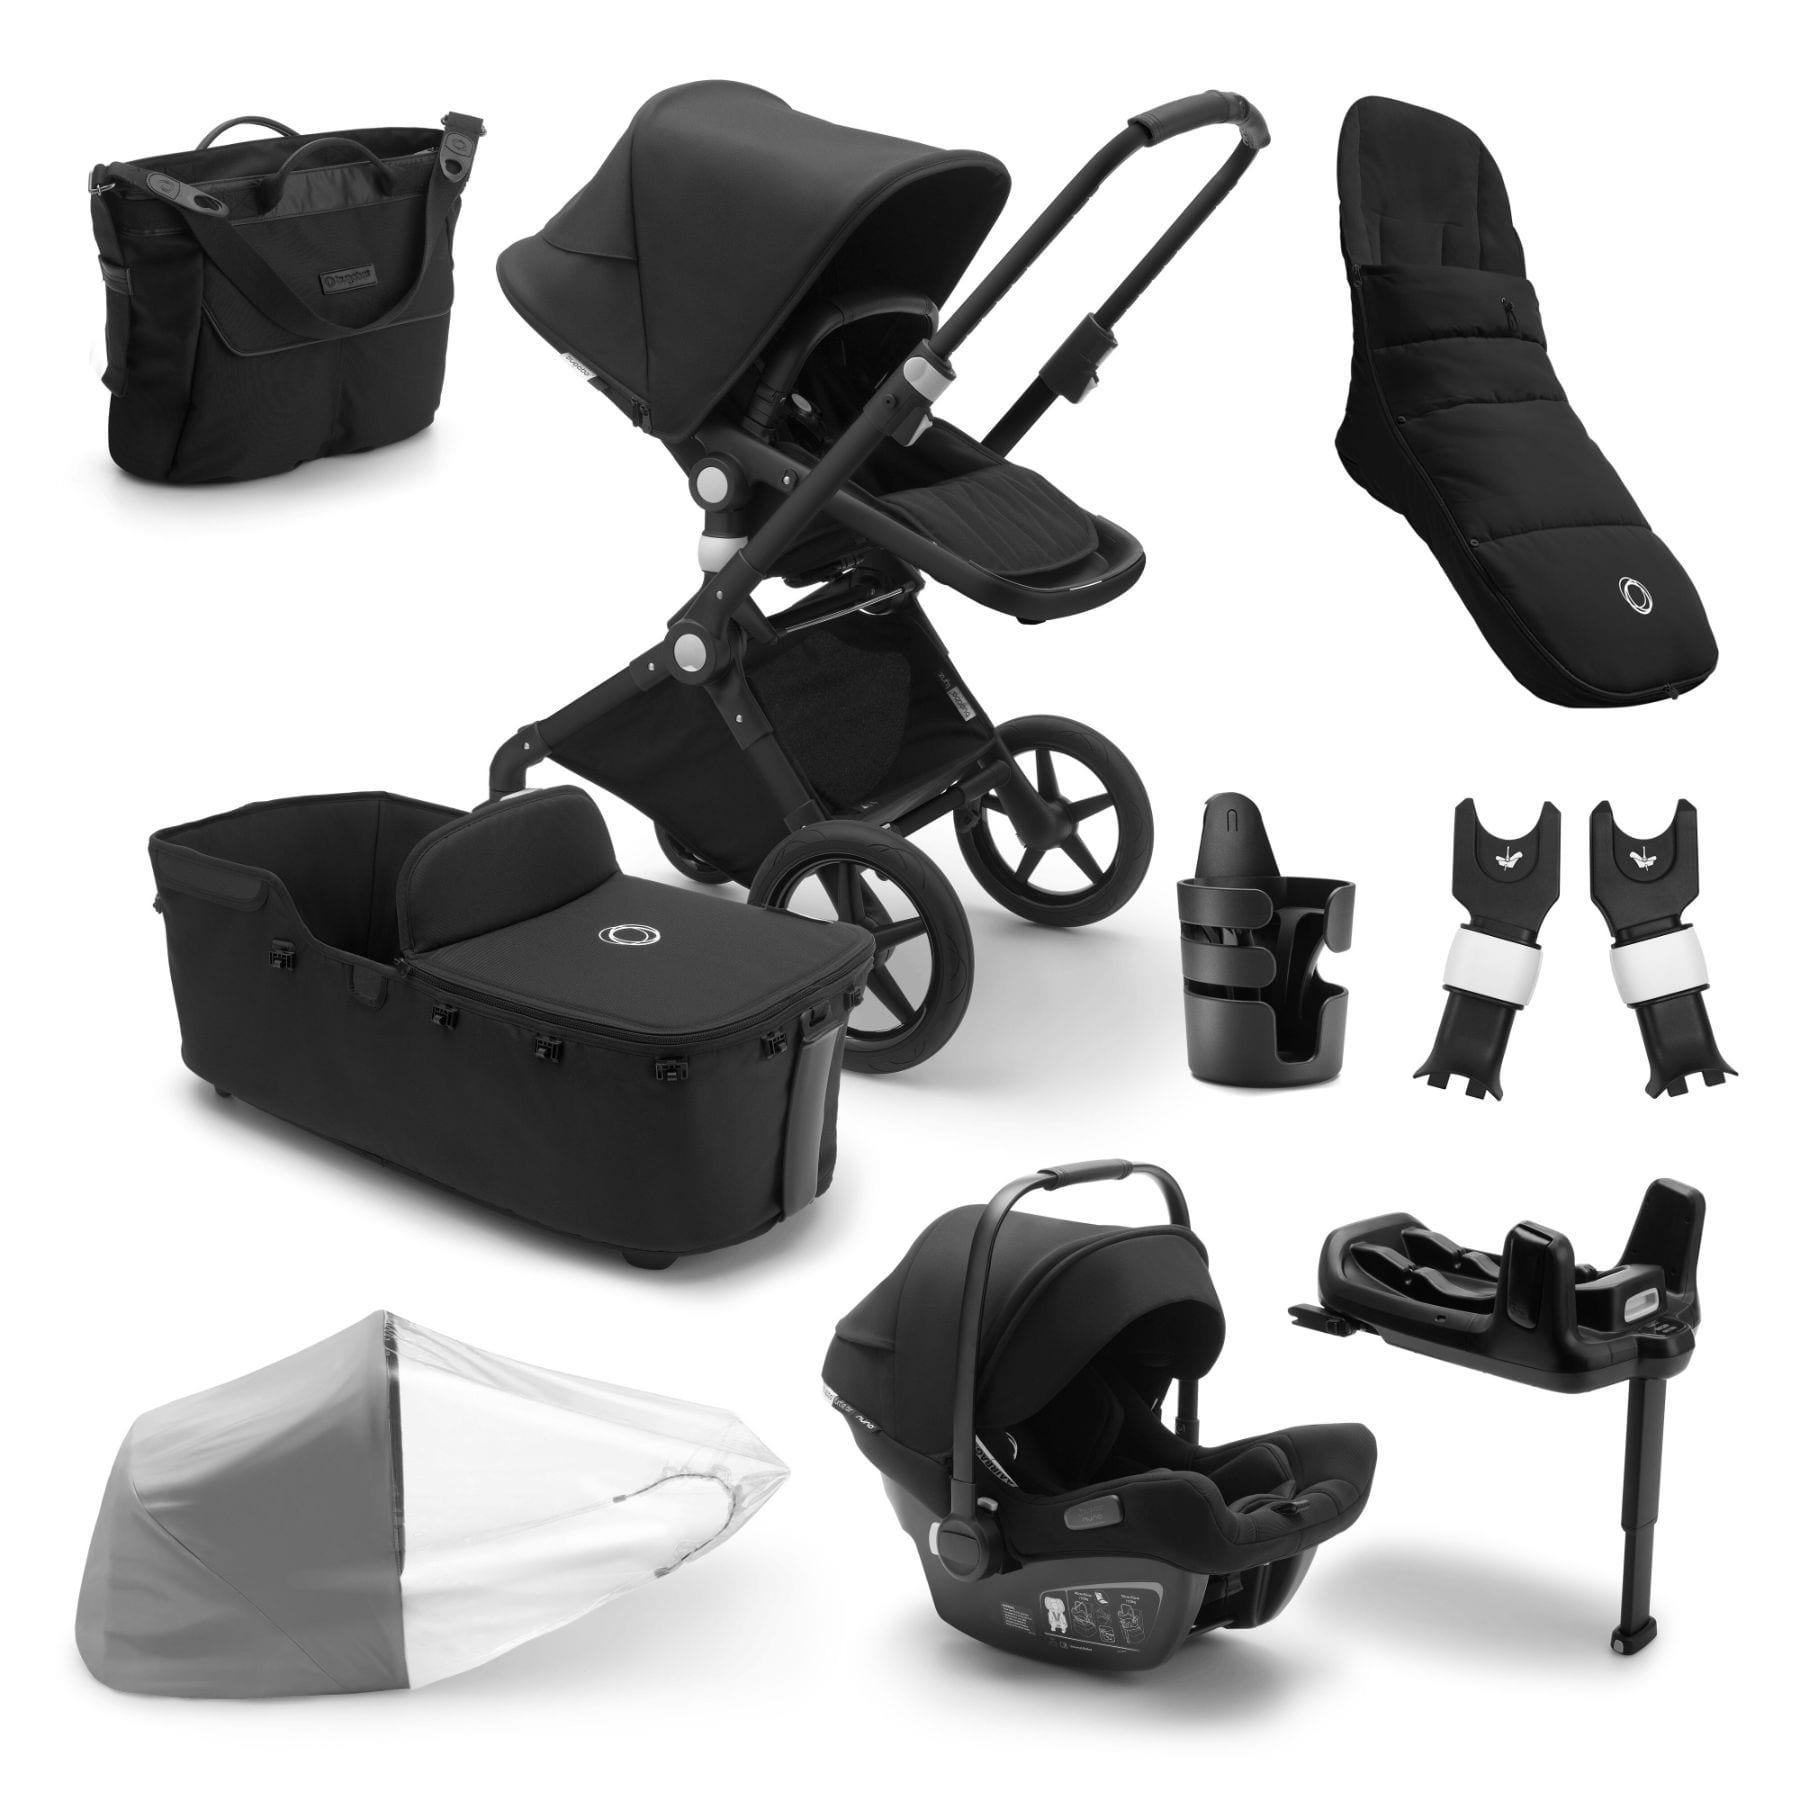 Bugaboo Lynx Ready To Go Further Bundle - Black Frame Pushchairs & Accessories Bugaboo